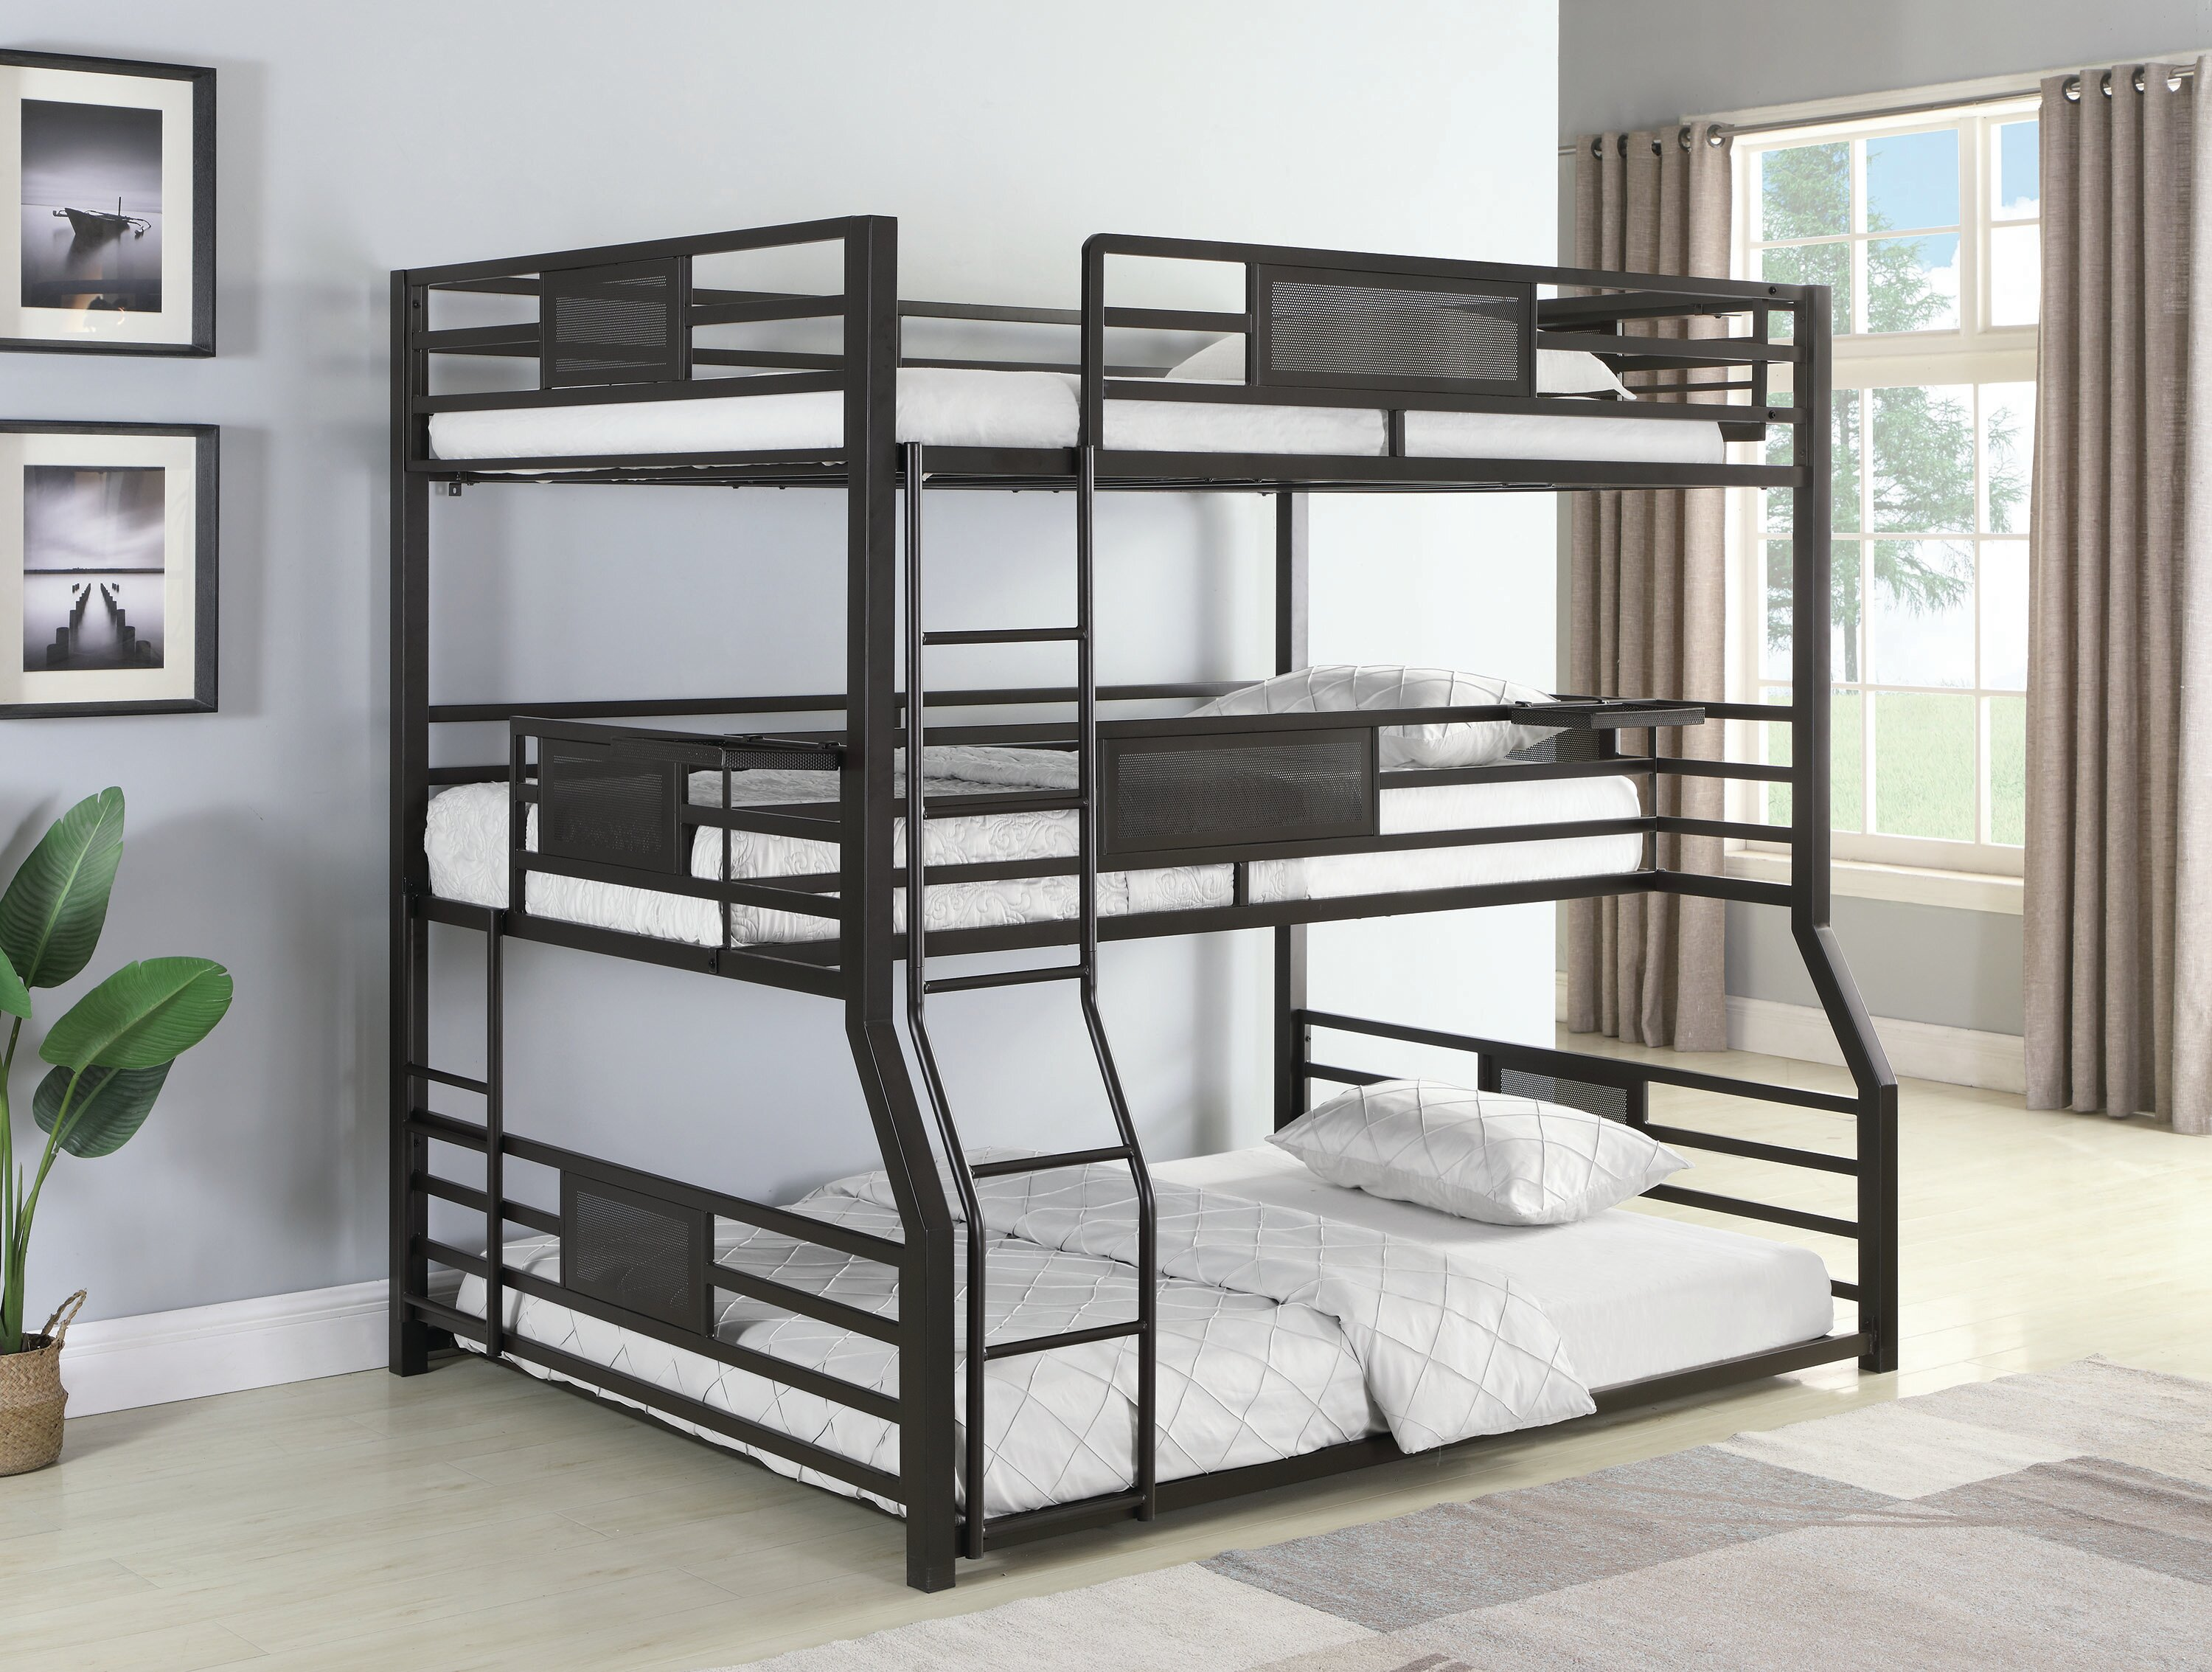 Image result for bunk beds full and twin